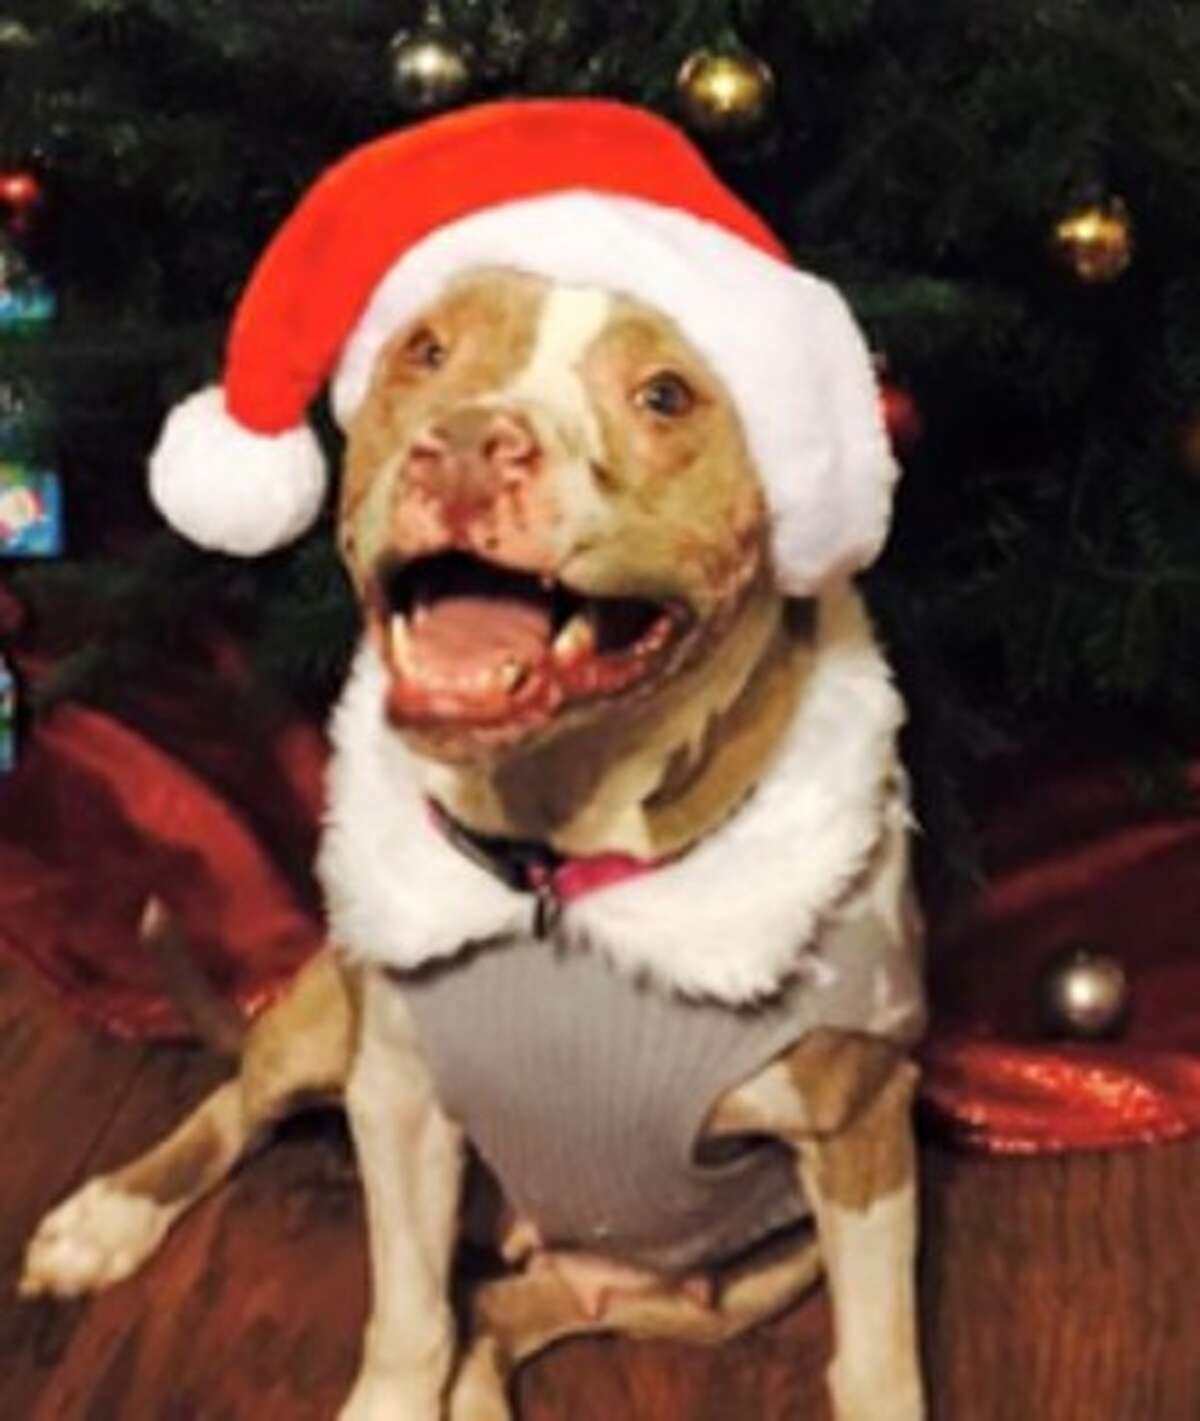 Rosie the pit bull has been adopted following months of medical care and recovery.